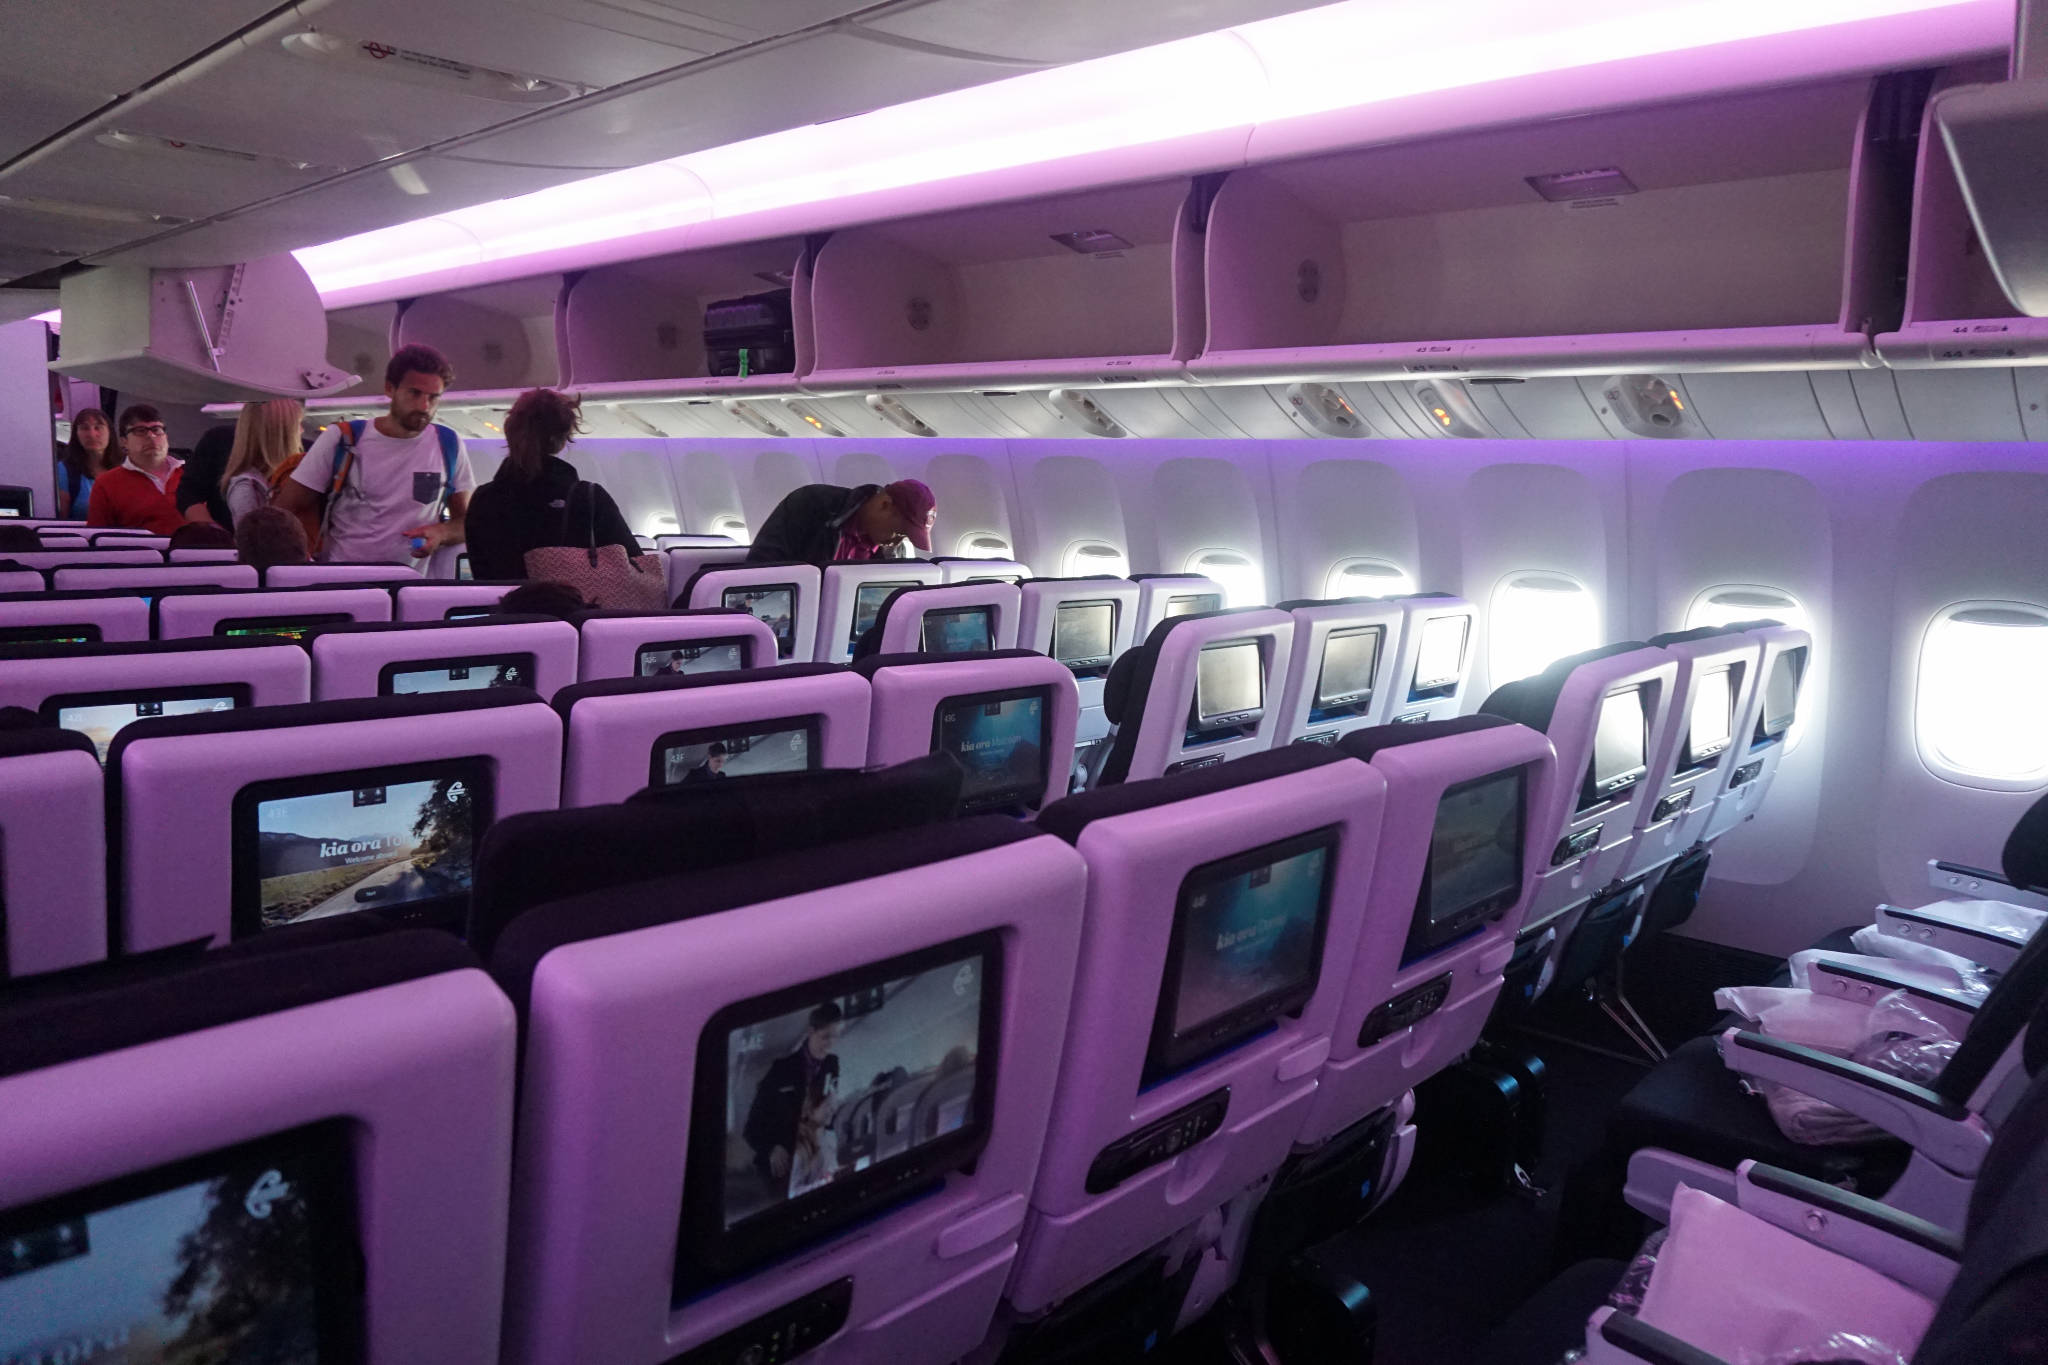 Air New Zealand Economy Class LAX to London LHR Trip